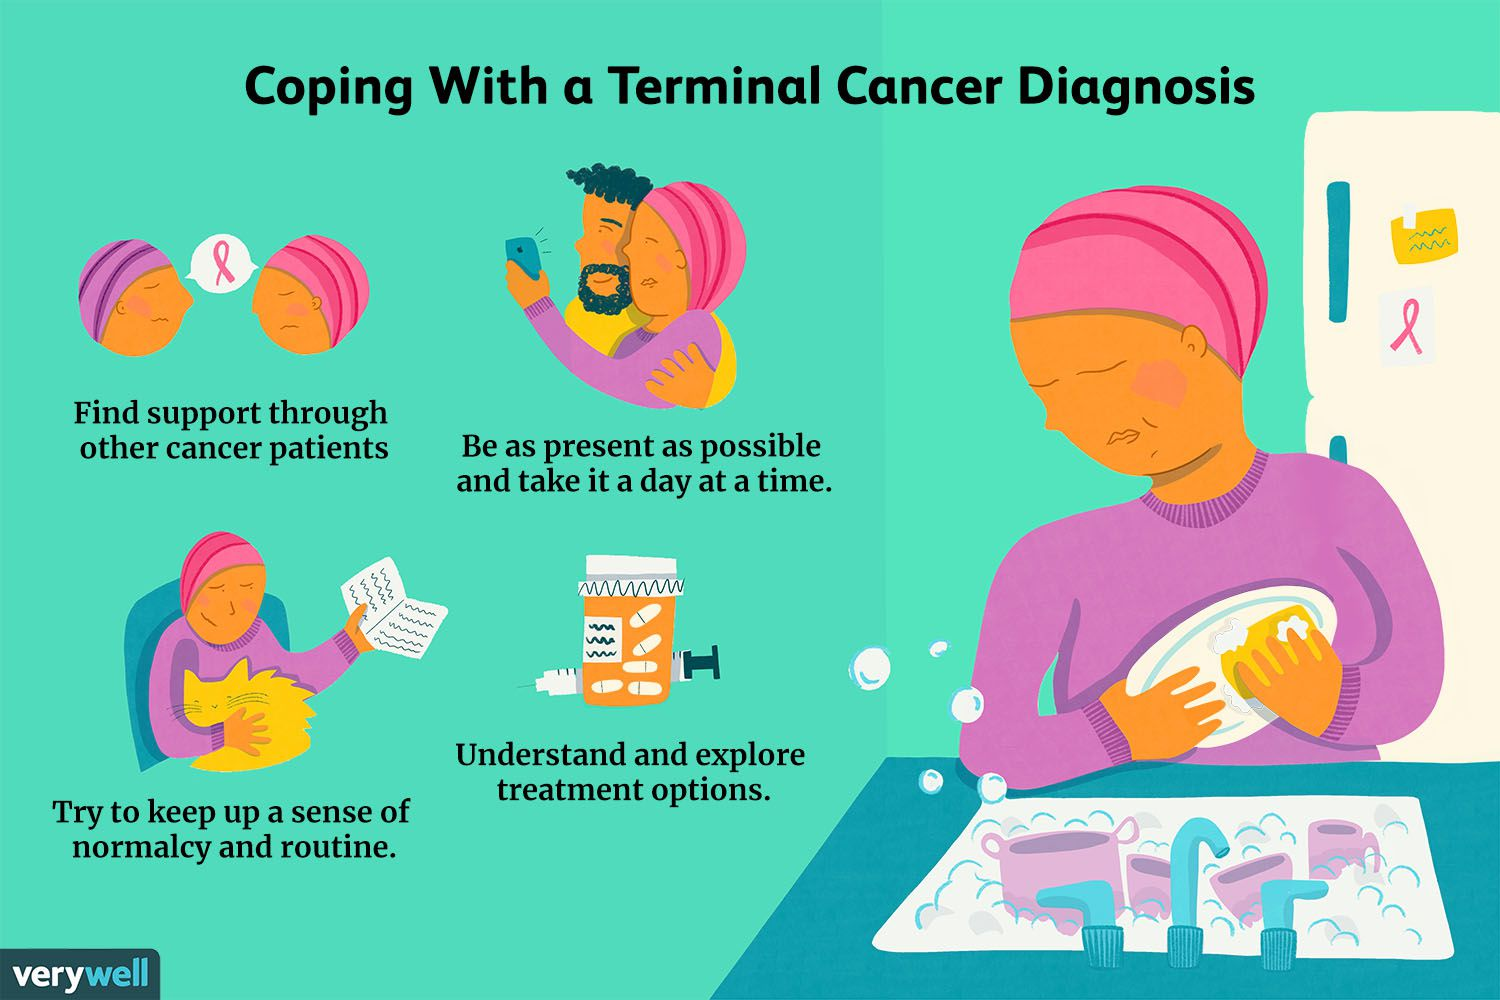 What To Do When You Are Diagnosed With Terminal Cancer